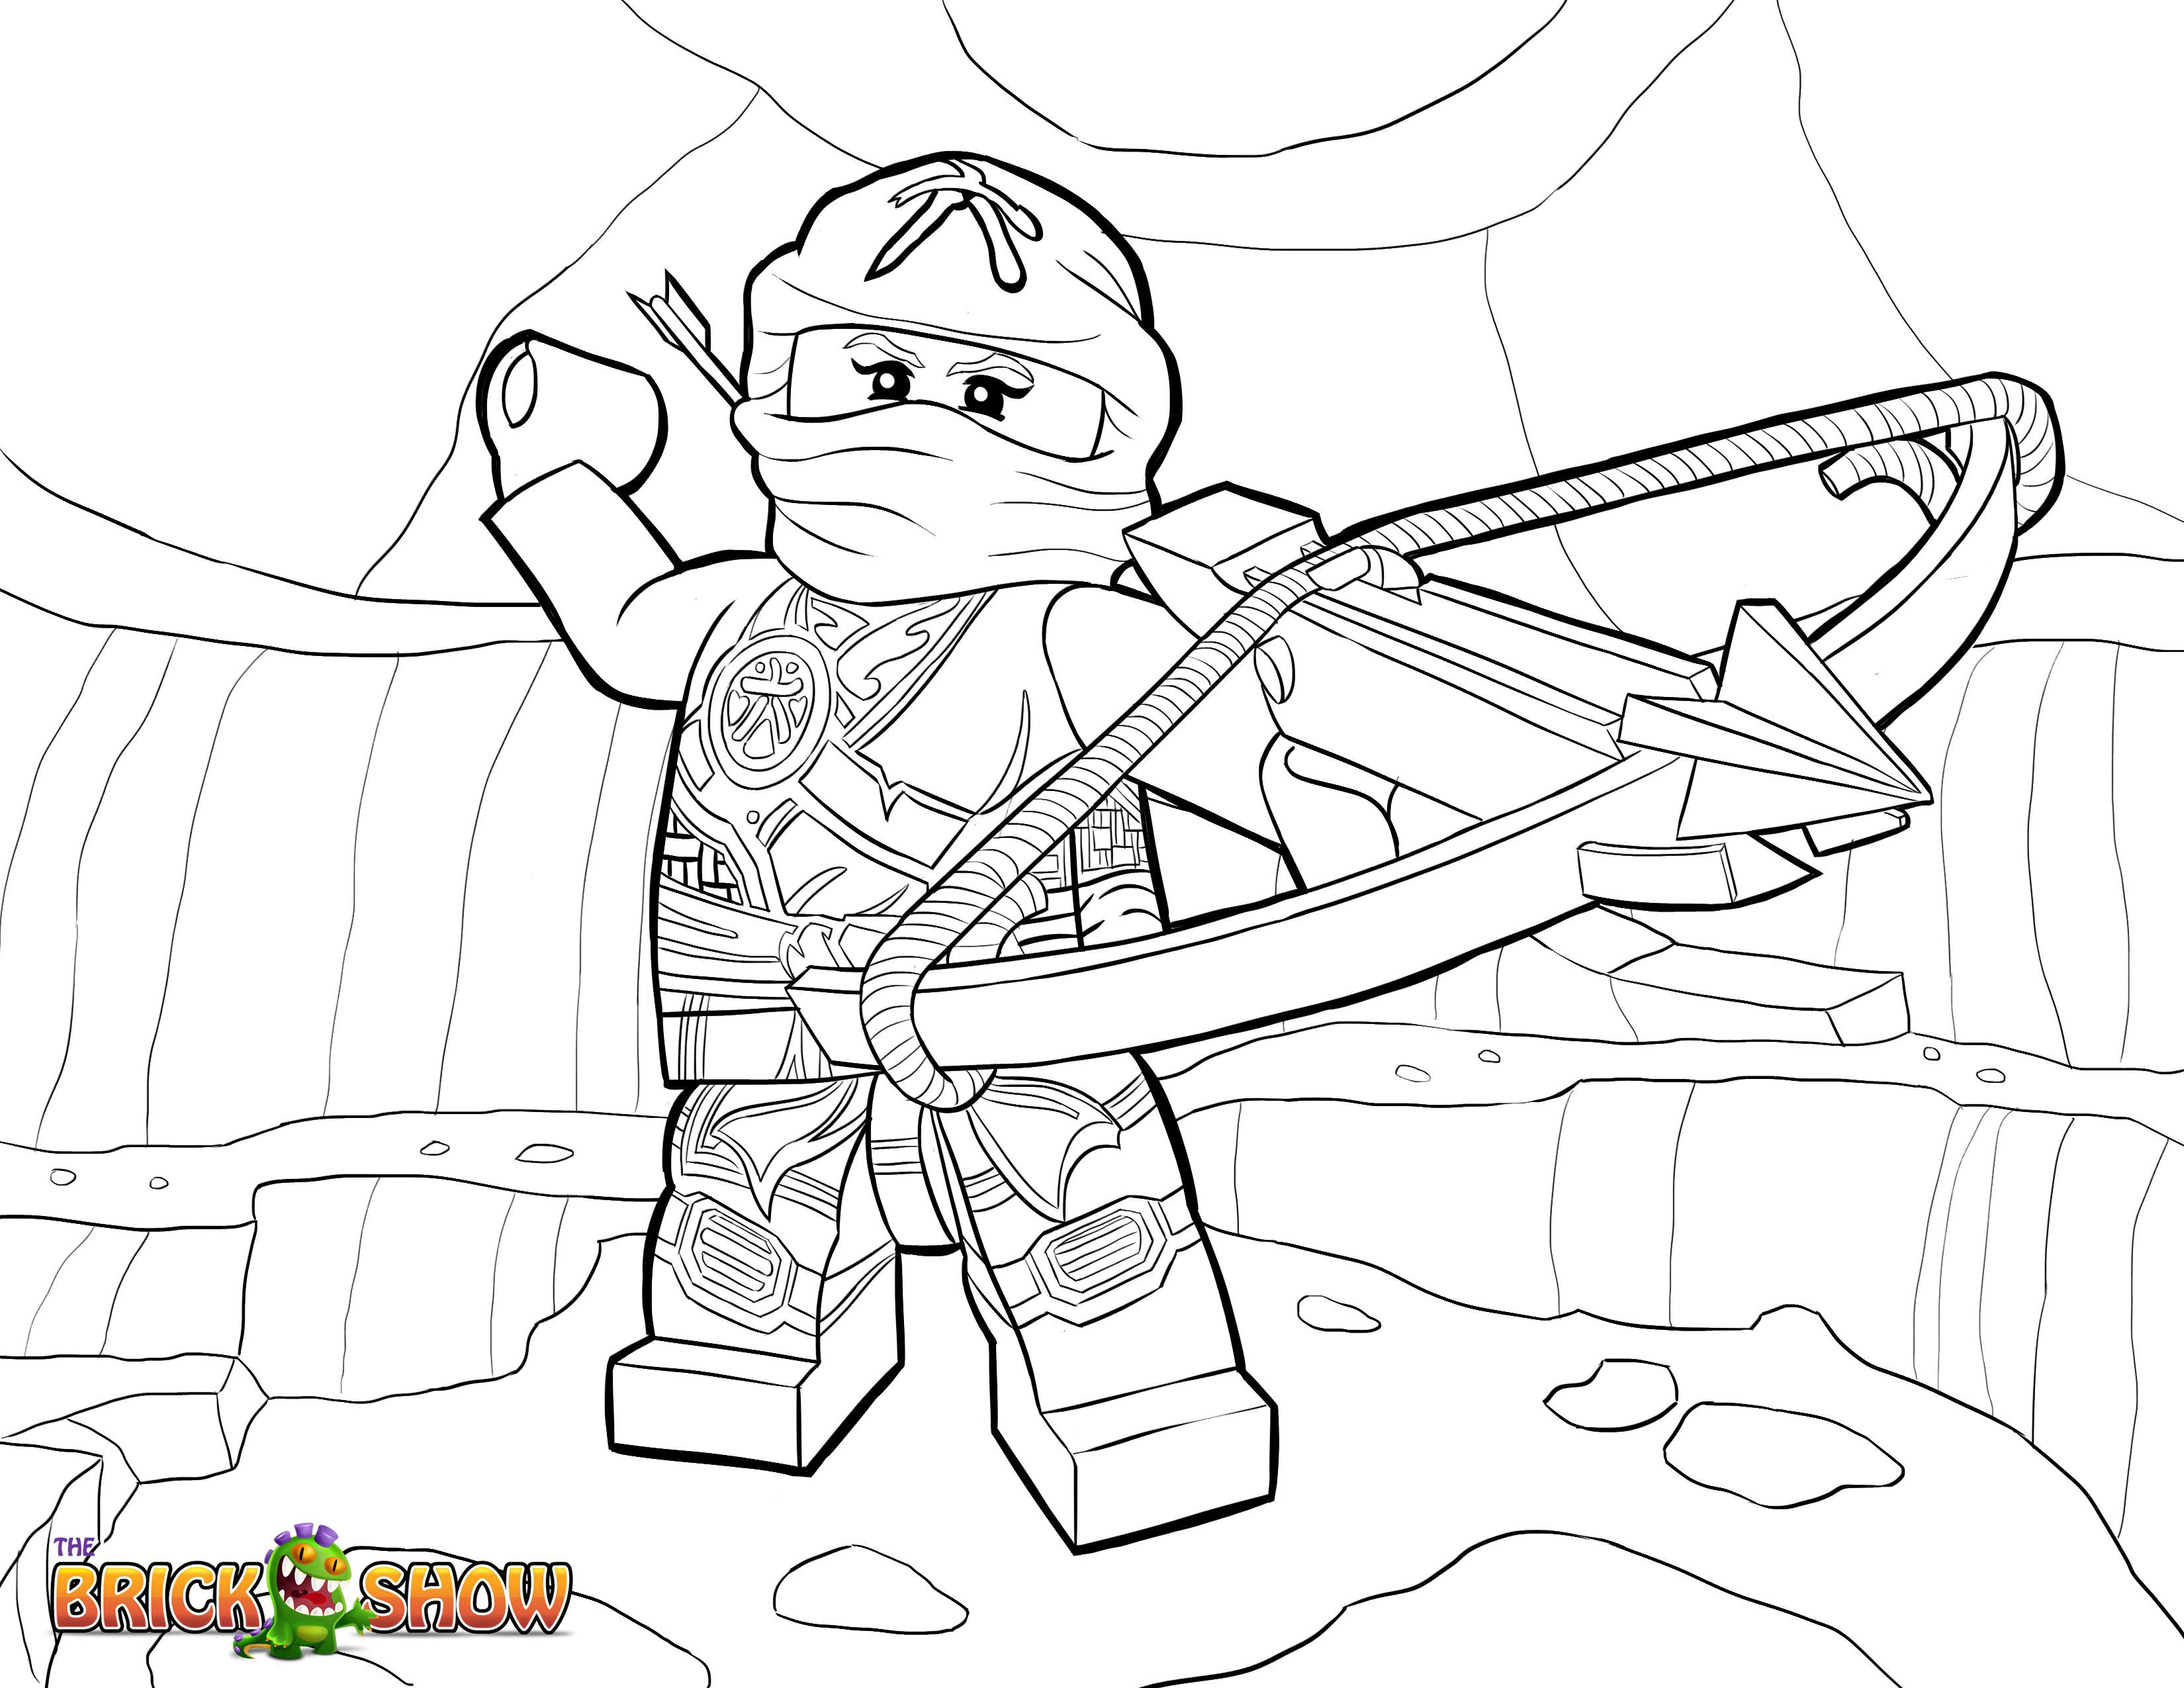 Ausmalbilder Ninjago Schlange Neu top 75 Free Printable Pokemon Coloring Pages Line Best Lego Bilder